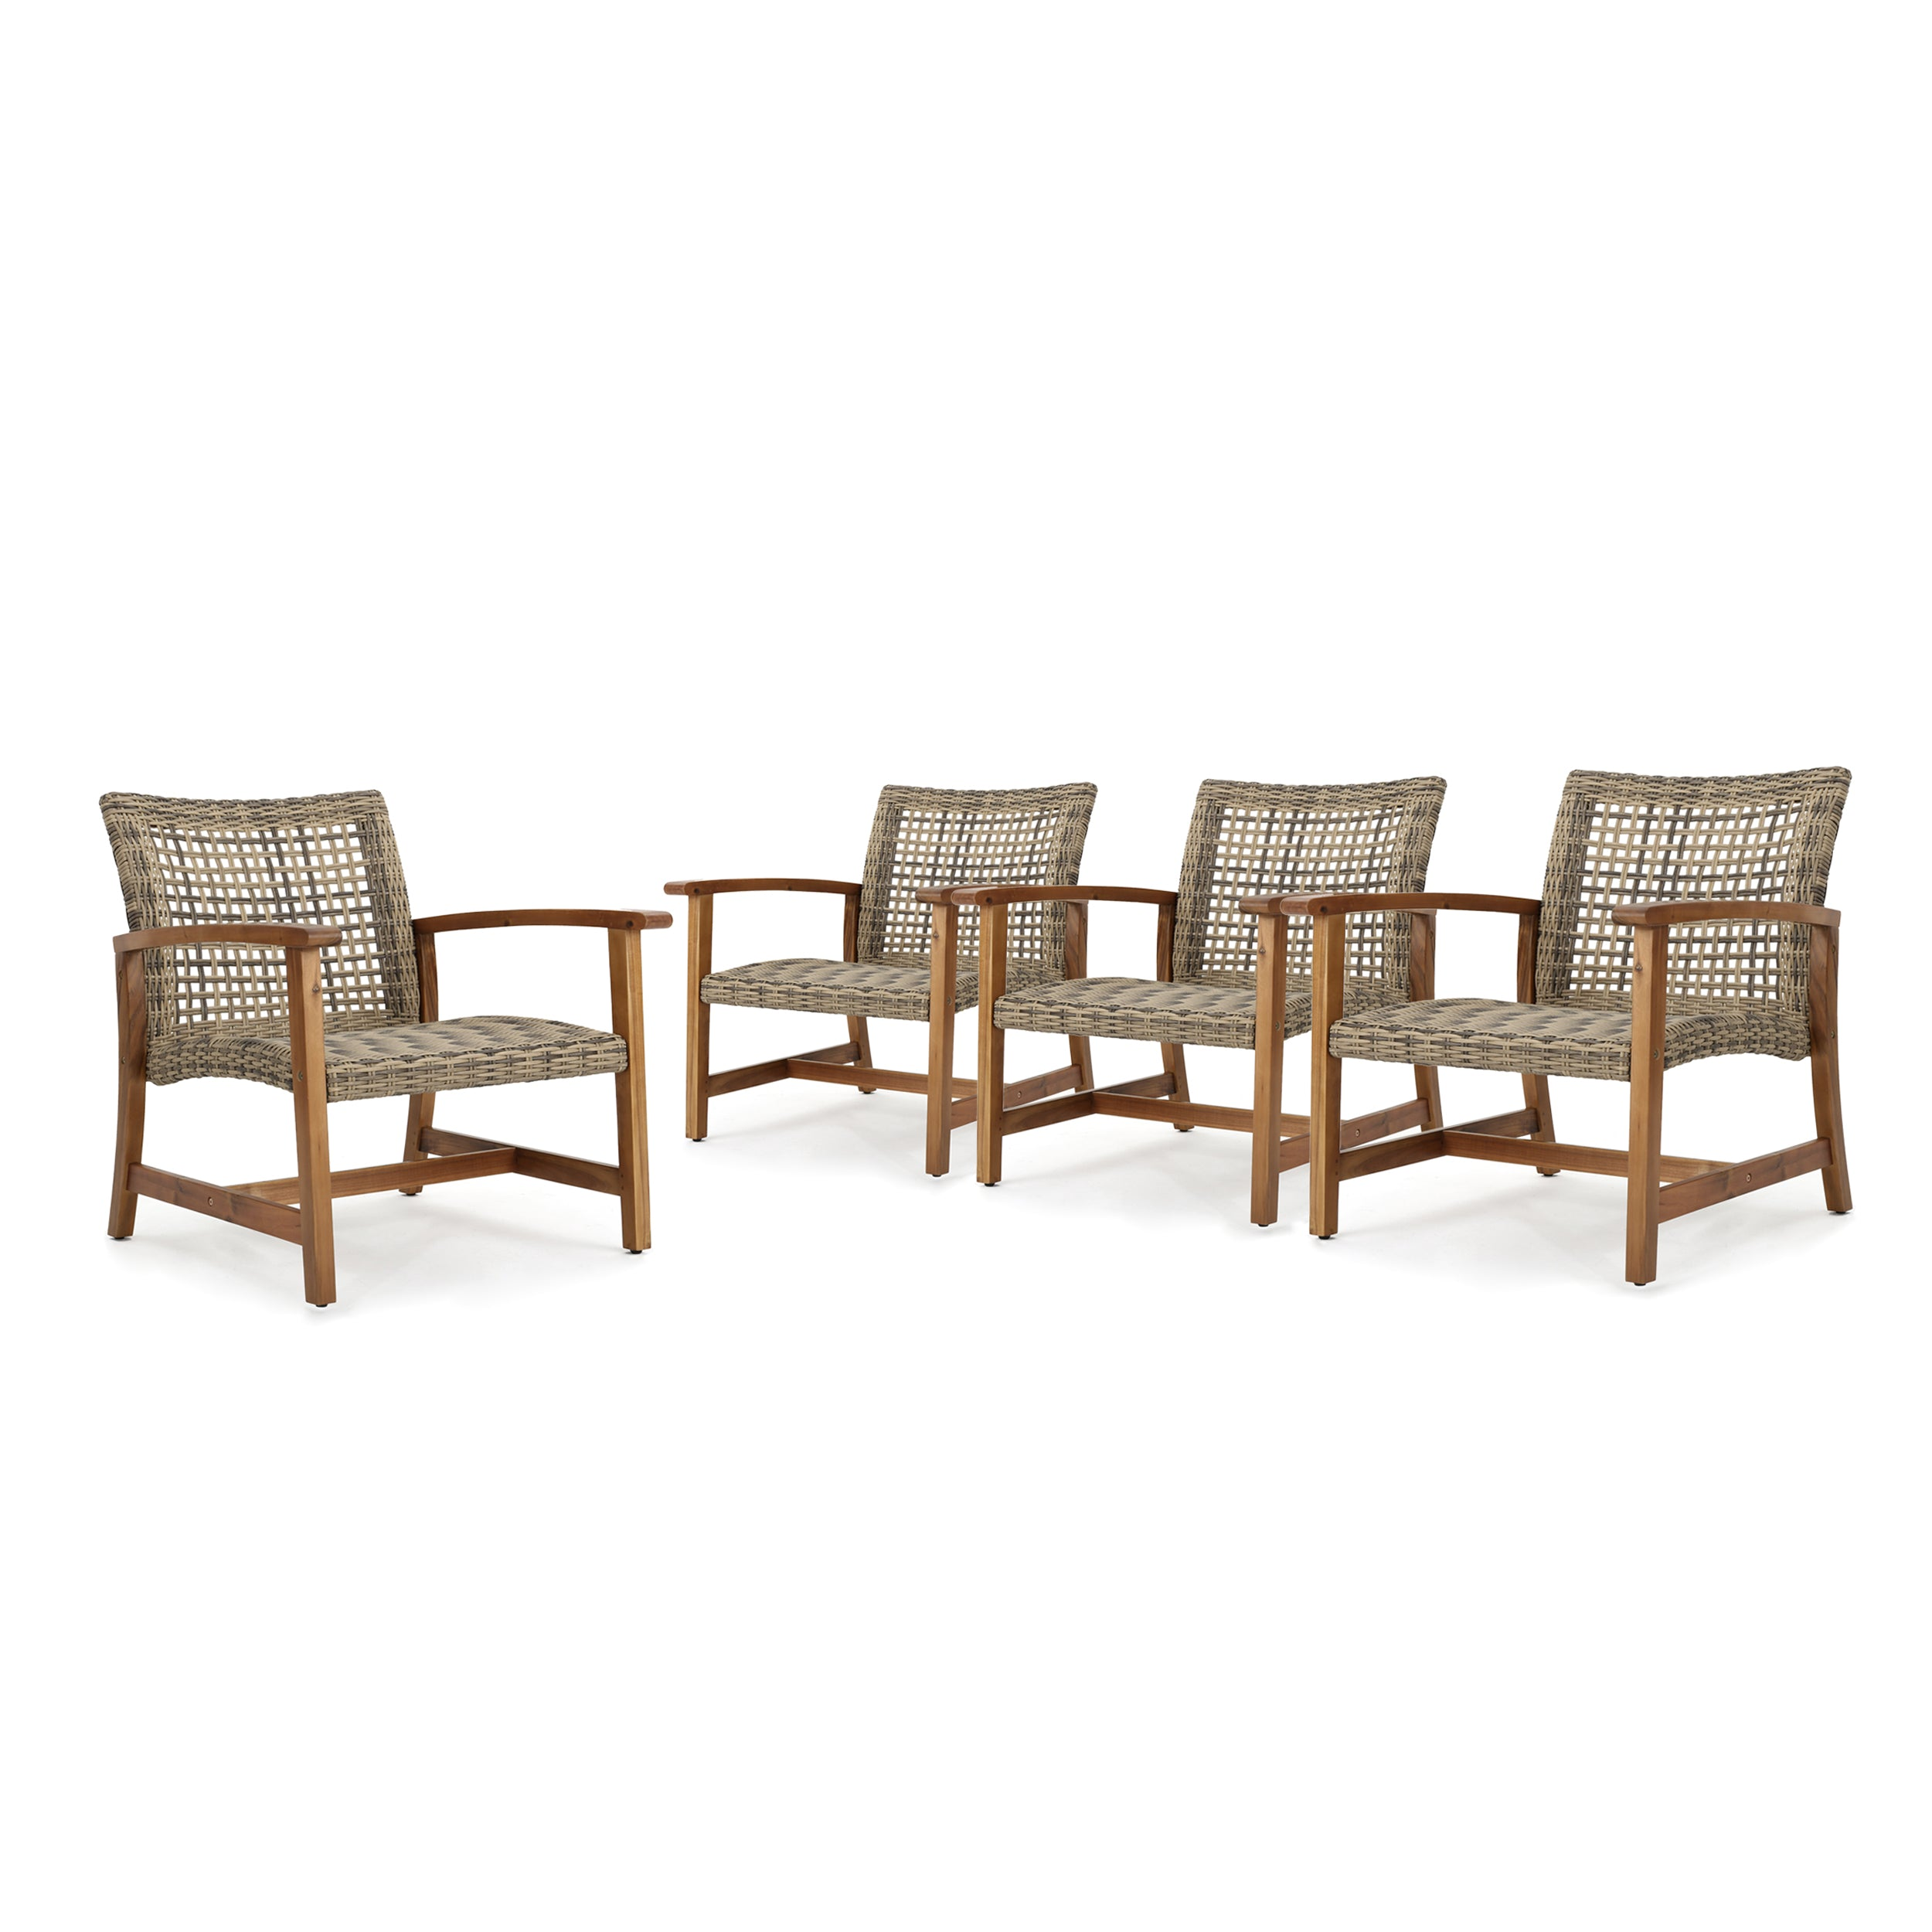 Alyssa Outdoor Mid Century Gray Wicker Club Chairs with Wood Frame Set of 4